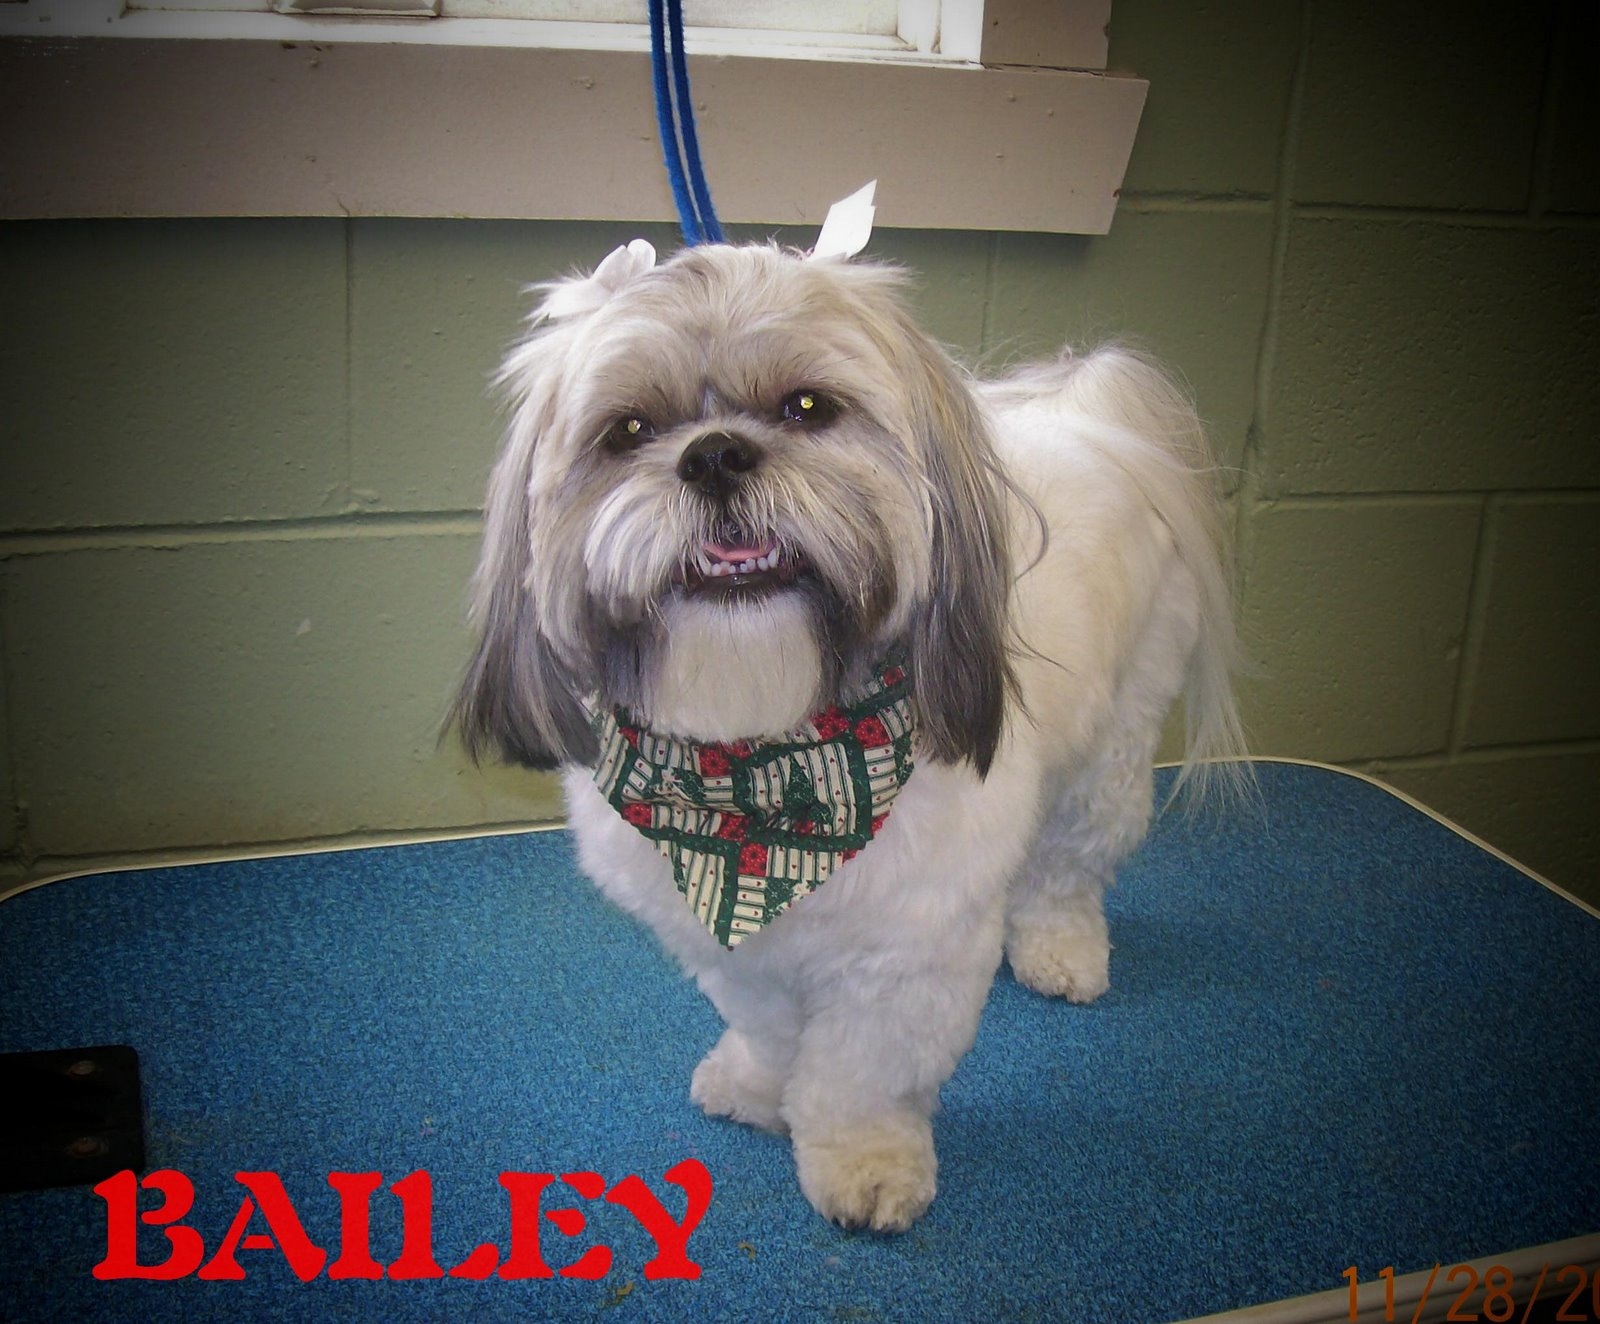 Bailey is a Shih Tzu. A very sweet girl, loves whatever I do. Her mom